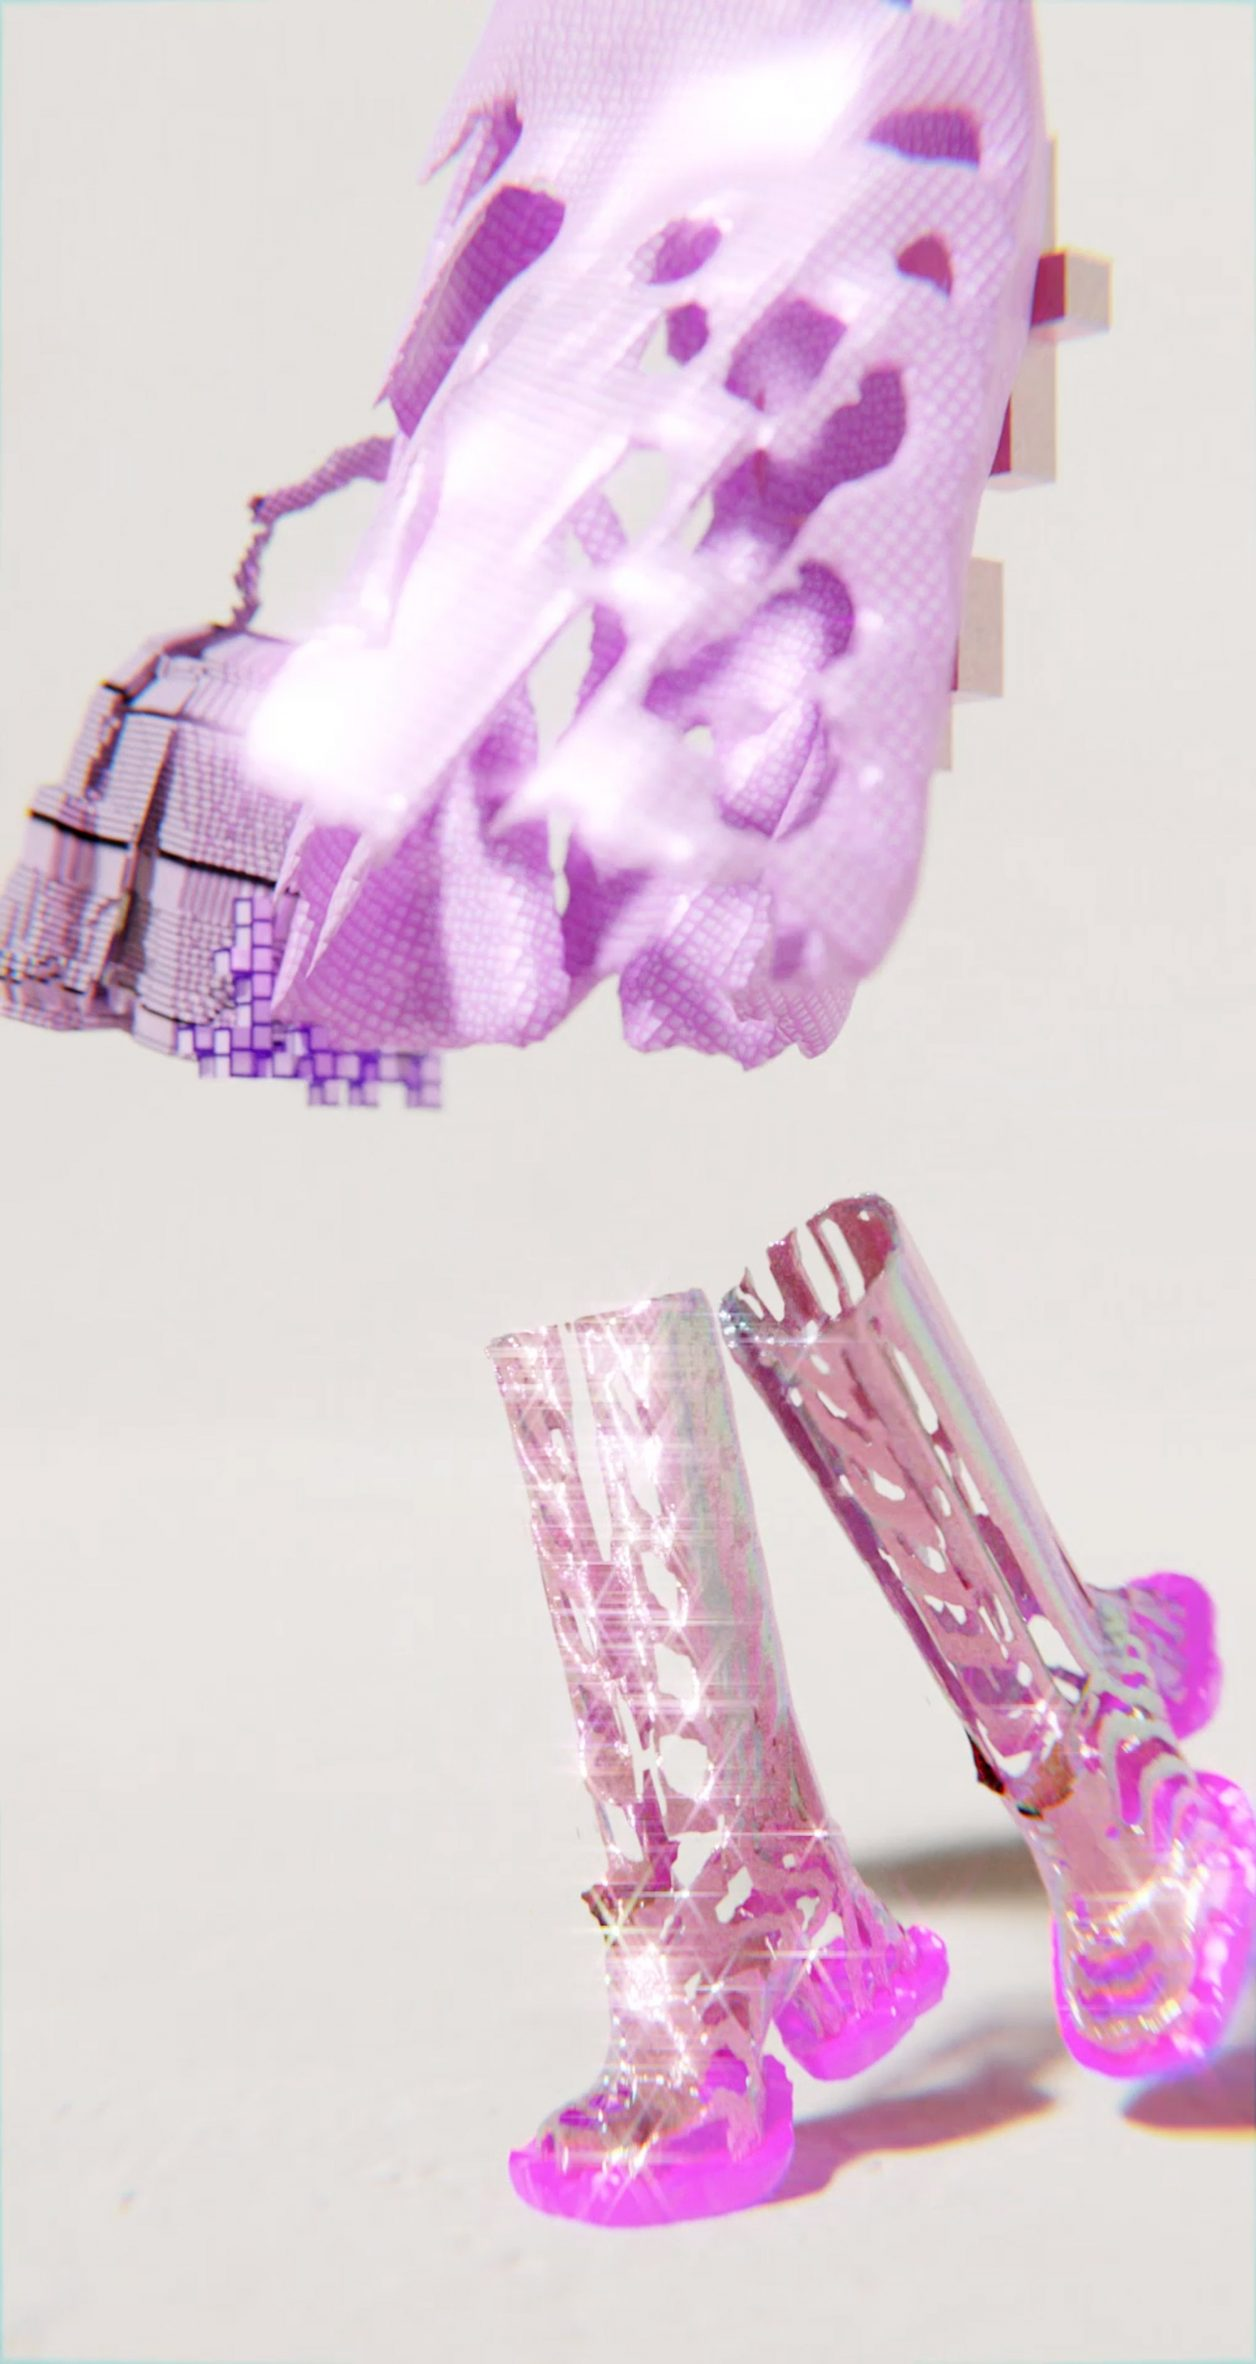 Detail image of tall pink boots in the Decrypted Garments collection